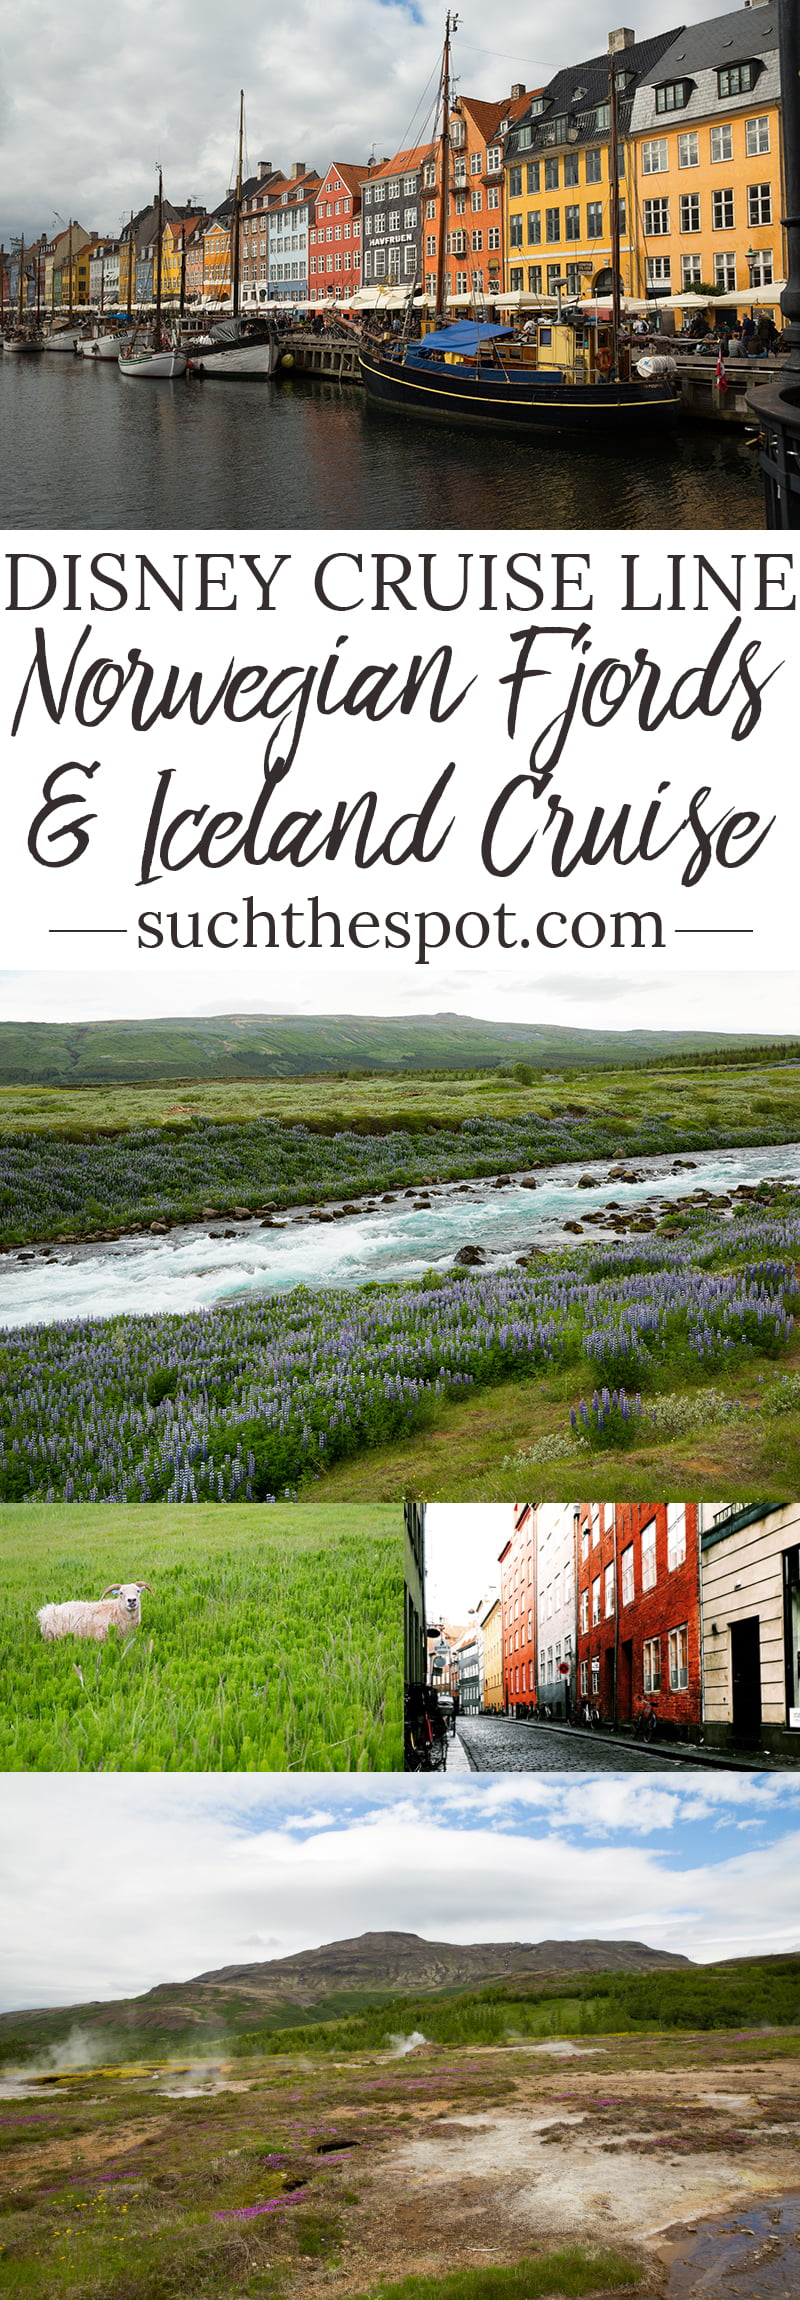 Our Norwegian Fjords and Iceland Cruise aboard the Disney Cruise Line was an bucket list trip for sure! This trip report is full of beautiful pictures and all the details you need to plan your own vacation!